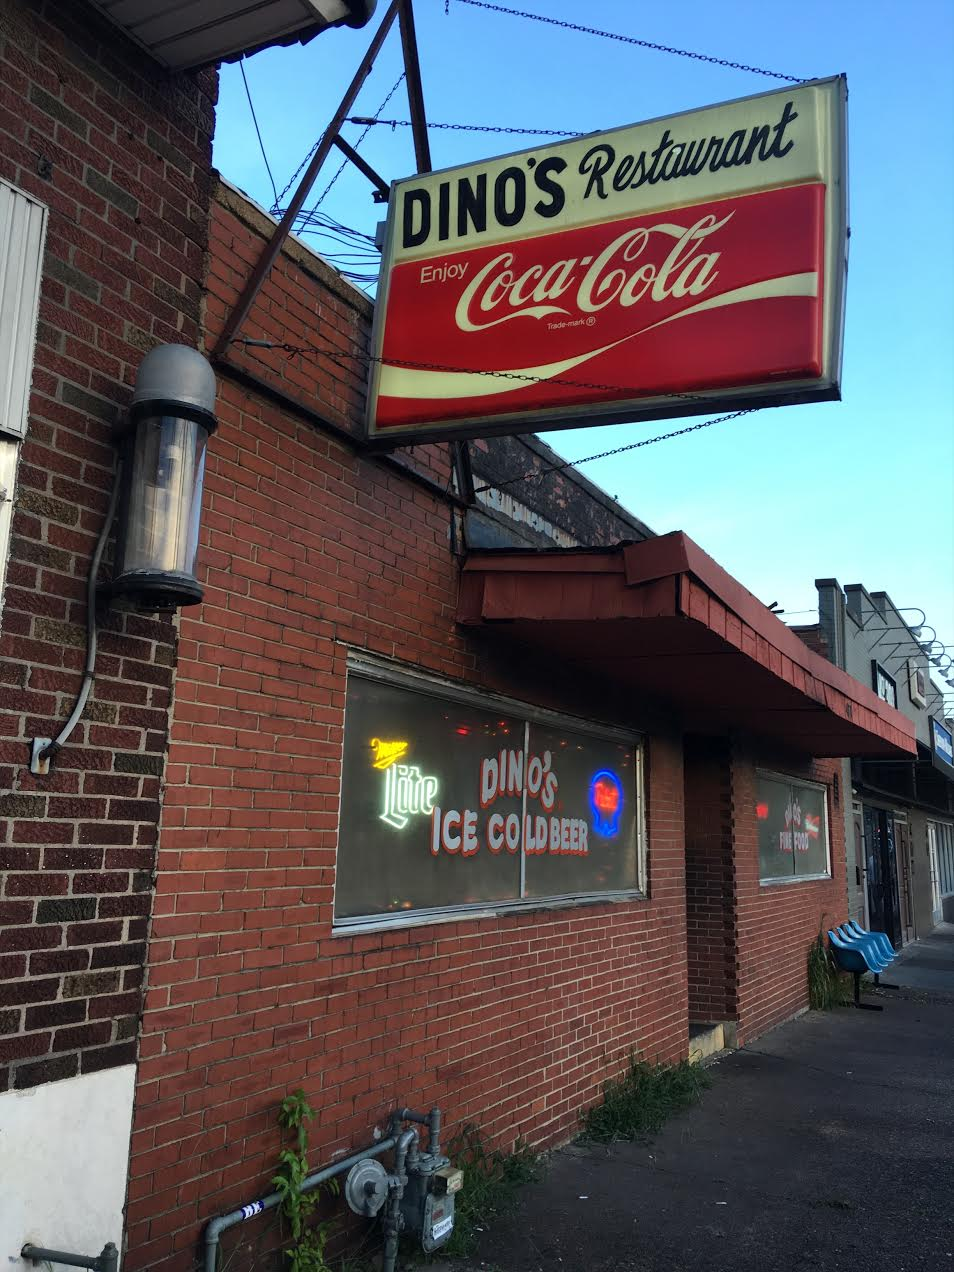 Dino's Restaurant - Dino's is Nashville's oldest dive bar with the most delicious late night eats. If you aren't getting the cheeseburger, you aren't living! Dino's is a must-do if you're looking for an easy brunch on the weekends, casual drunk munchies, or anything in between.